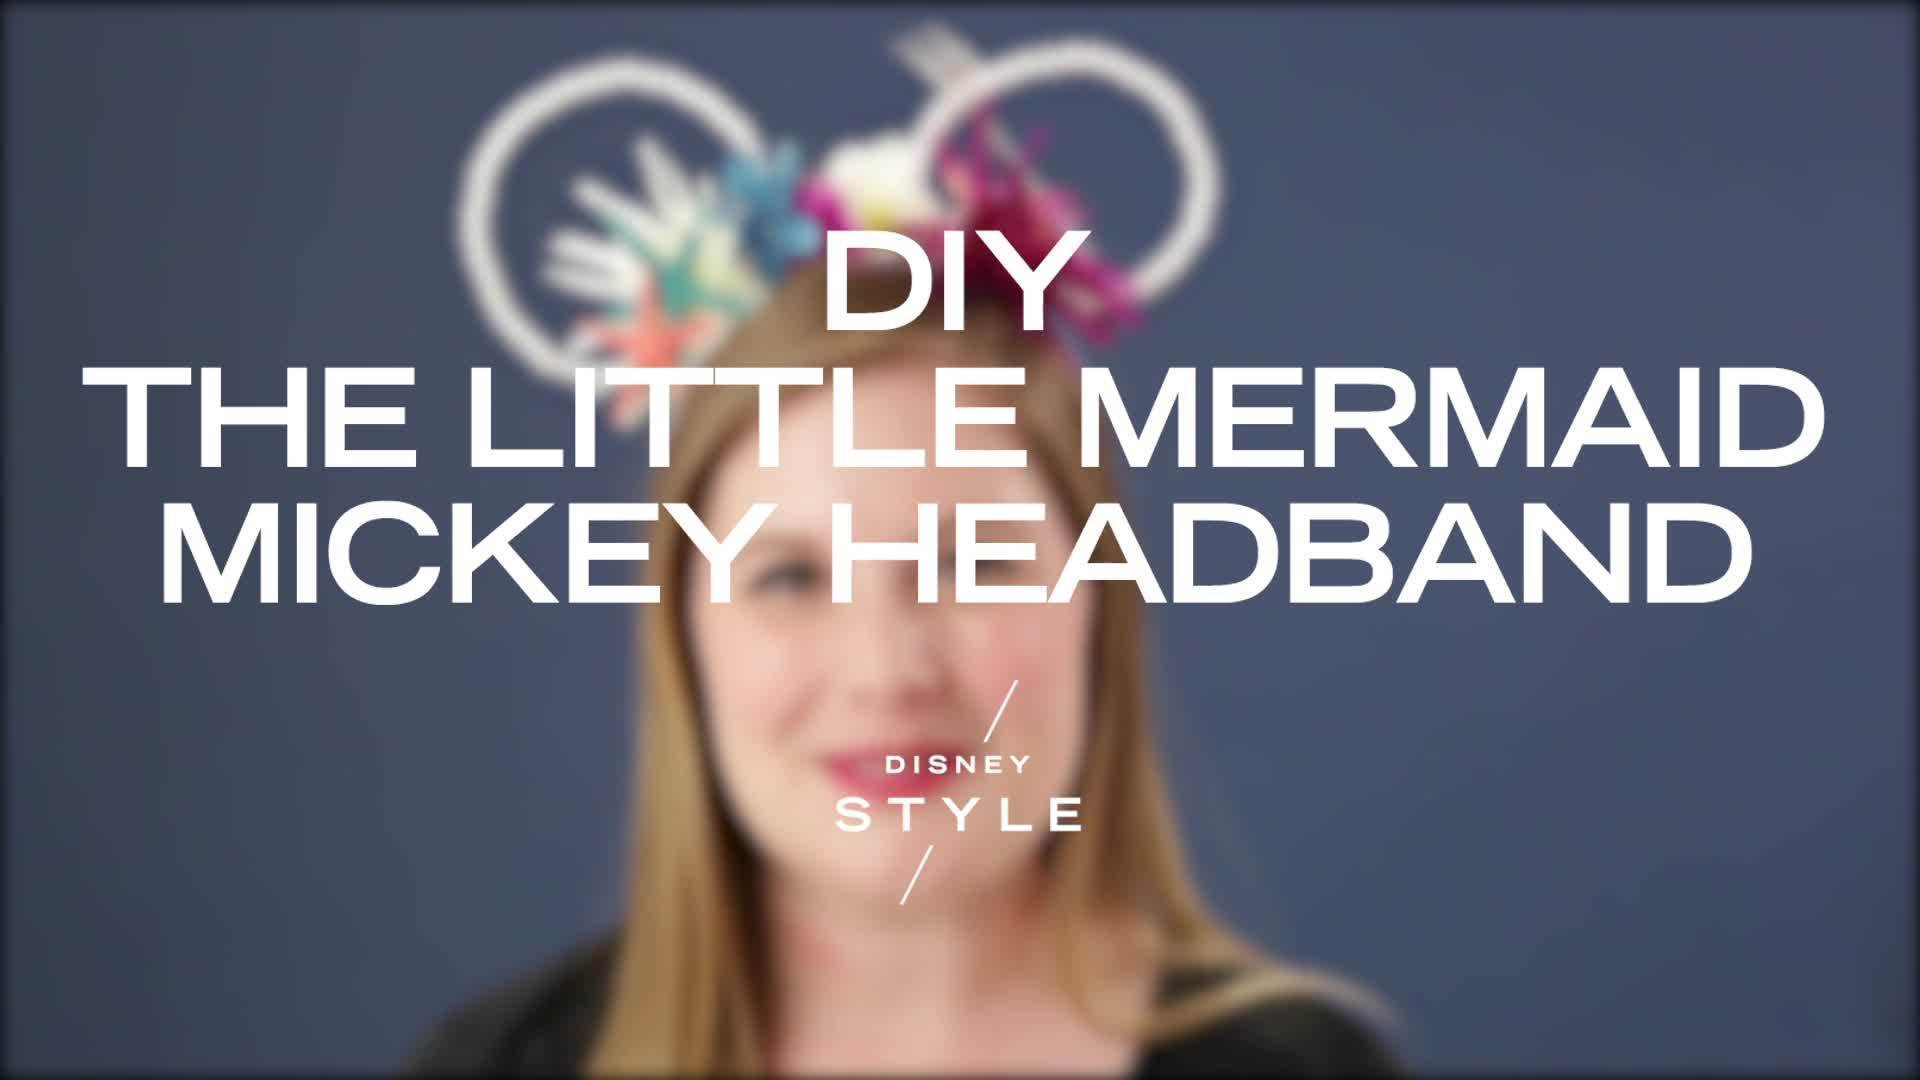 DIY The Little Mermaid Mickey Headband